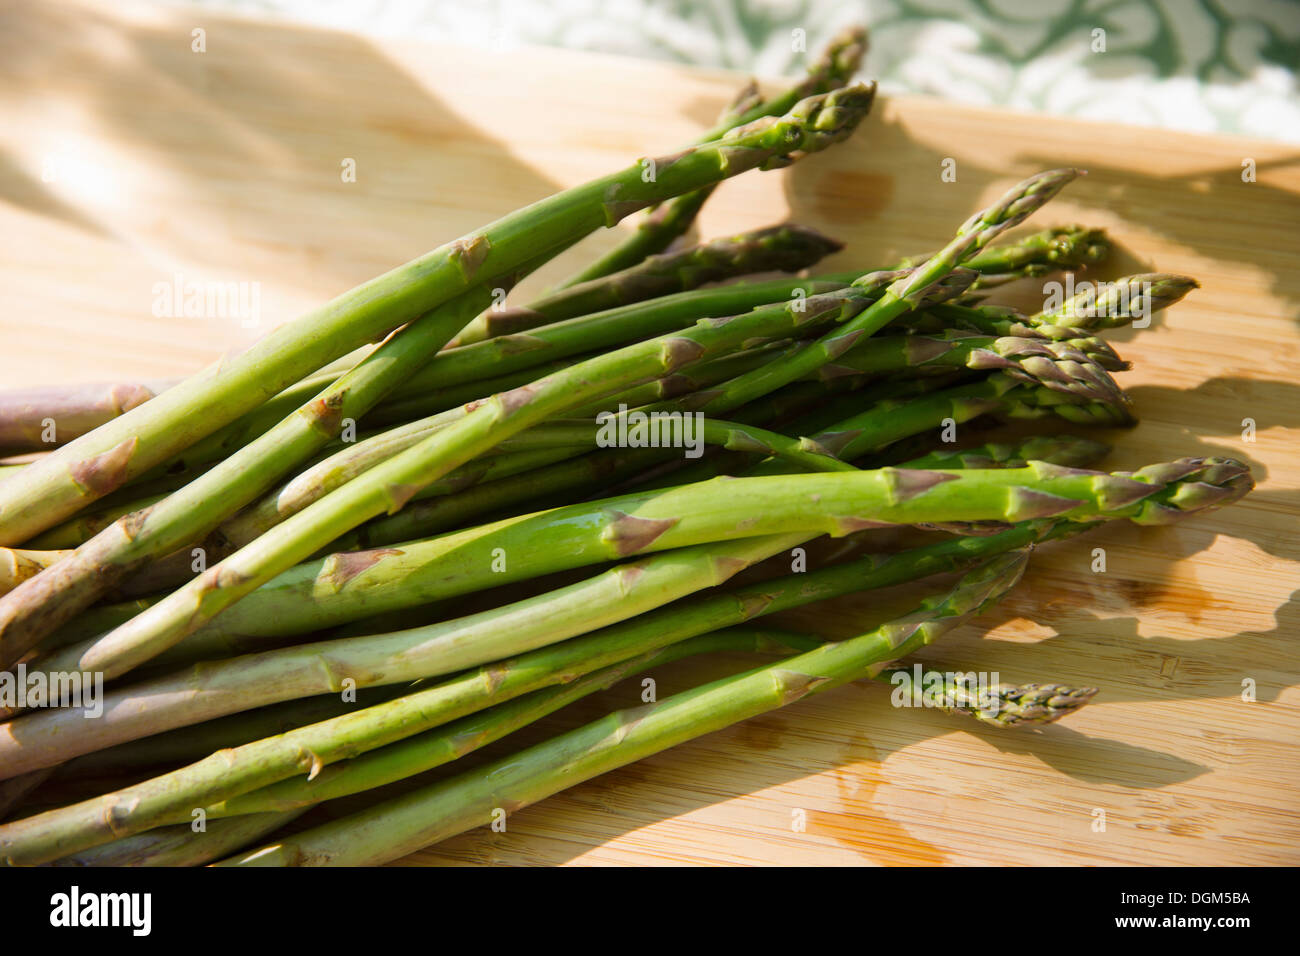 On the farm. A chopping board and sharp kitchen knife. A bunch of freshly picked organic asparagus. - Stock Image